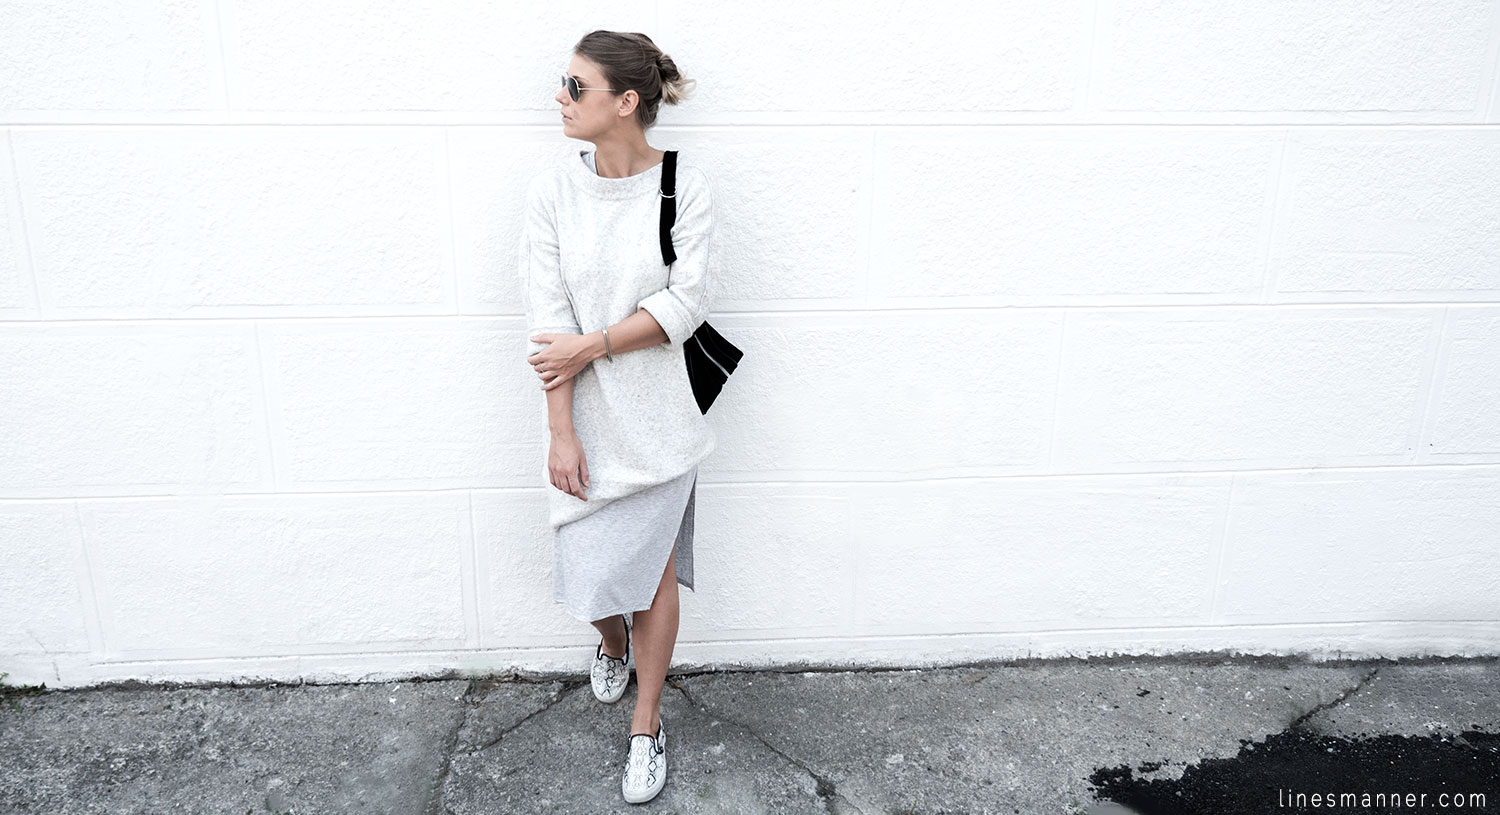 Lines-Manner-Remind-2015-Minimal-Essential-Outfit-Inspiration-Blog-Timeless-Year-Seasons-Details-Travel-Fashion-Versatile-Clean-Sleek-Quality-56